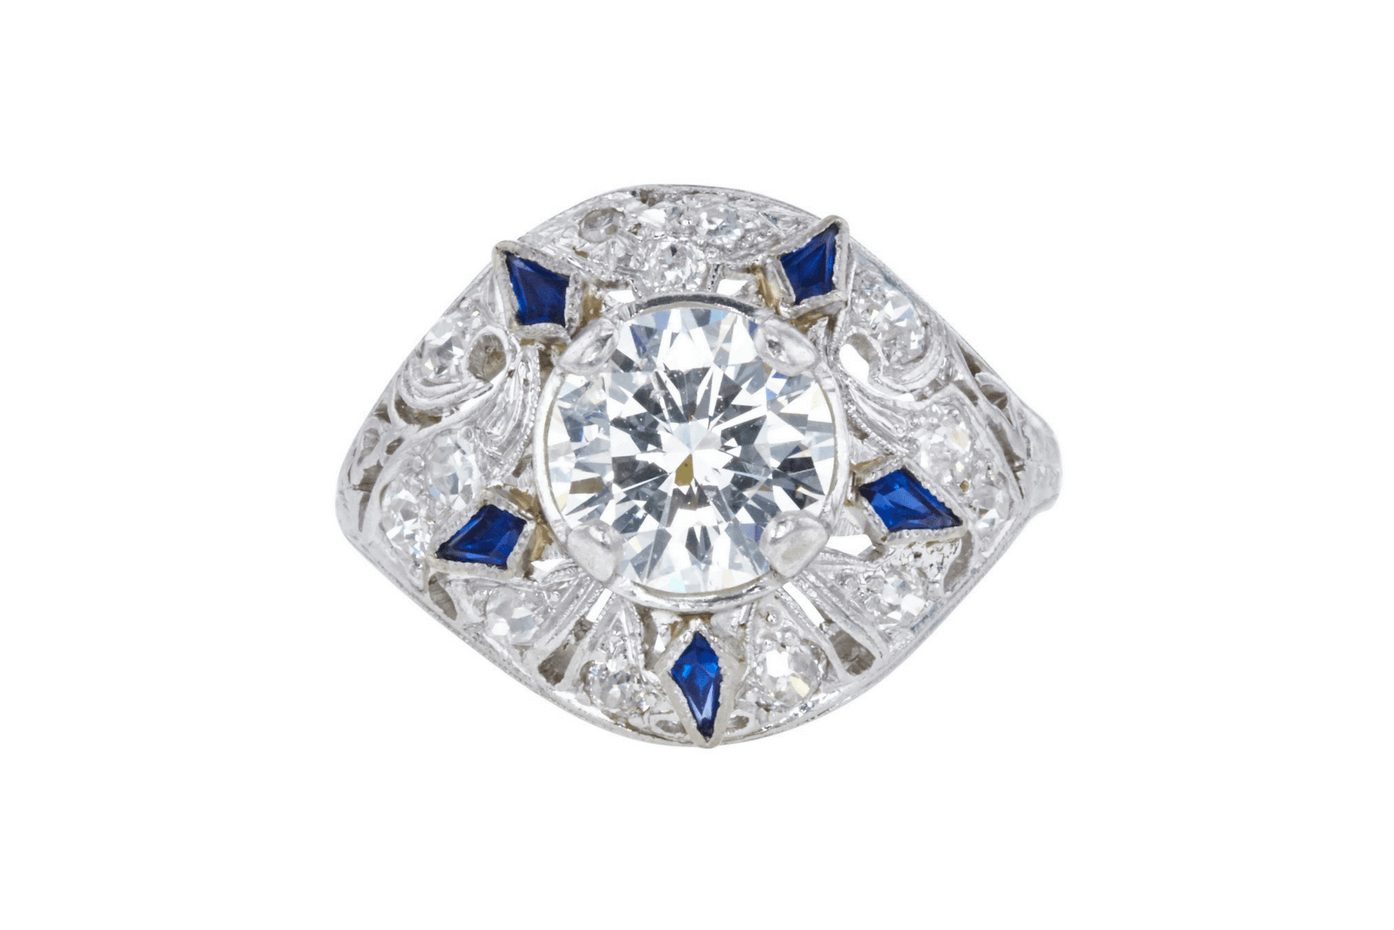 Antique GIA 1.5 CT Round Cut Solitaire Ring, Sold at Auction for $4,016.